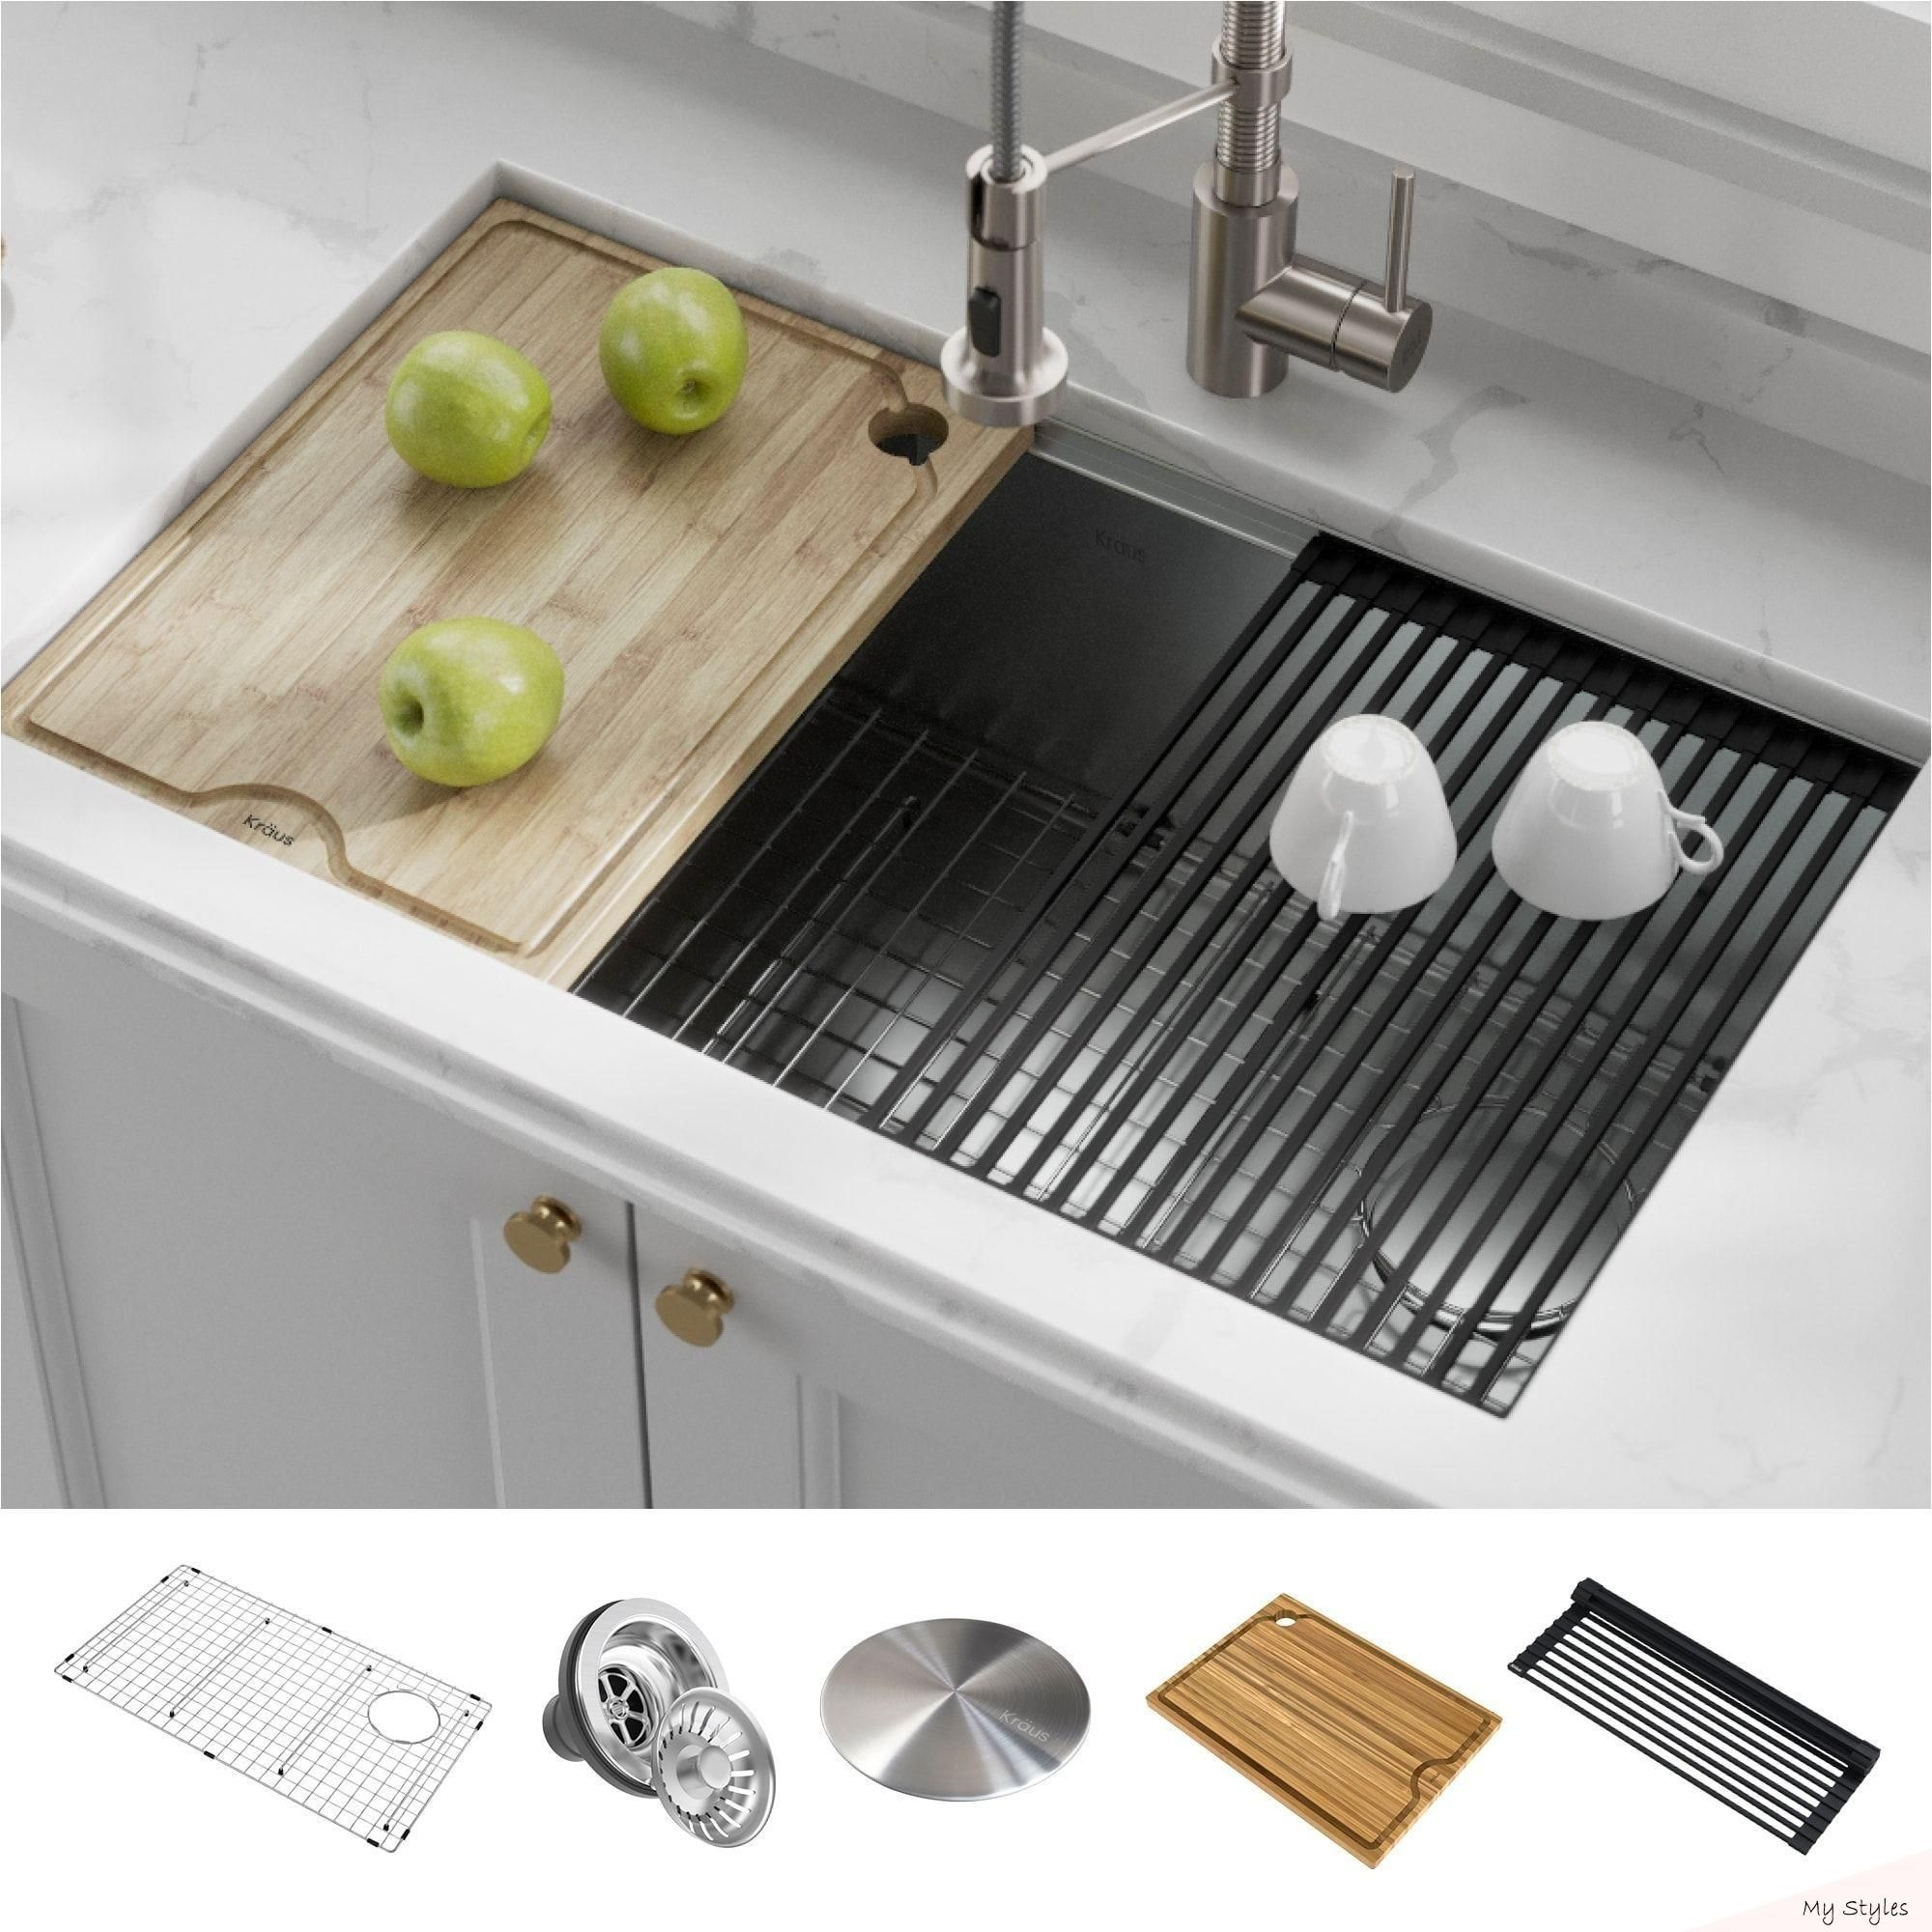 May 28 2020 This Pin Was Discovered By Janice Engbrock Discover Single Bowl Kitchen Sink Stainless Steel Kitchen Sink Undermount Undermount Kitchen Sinks